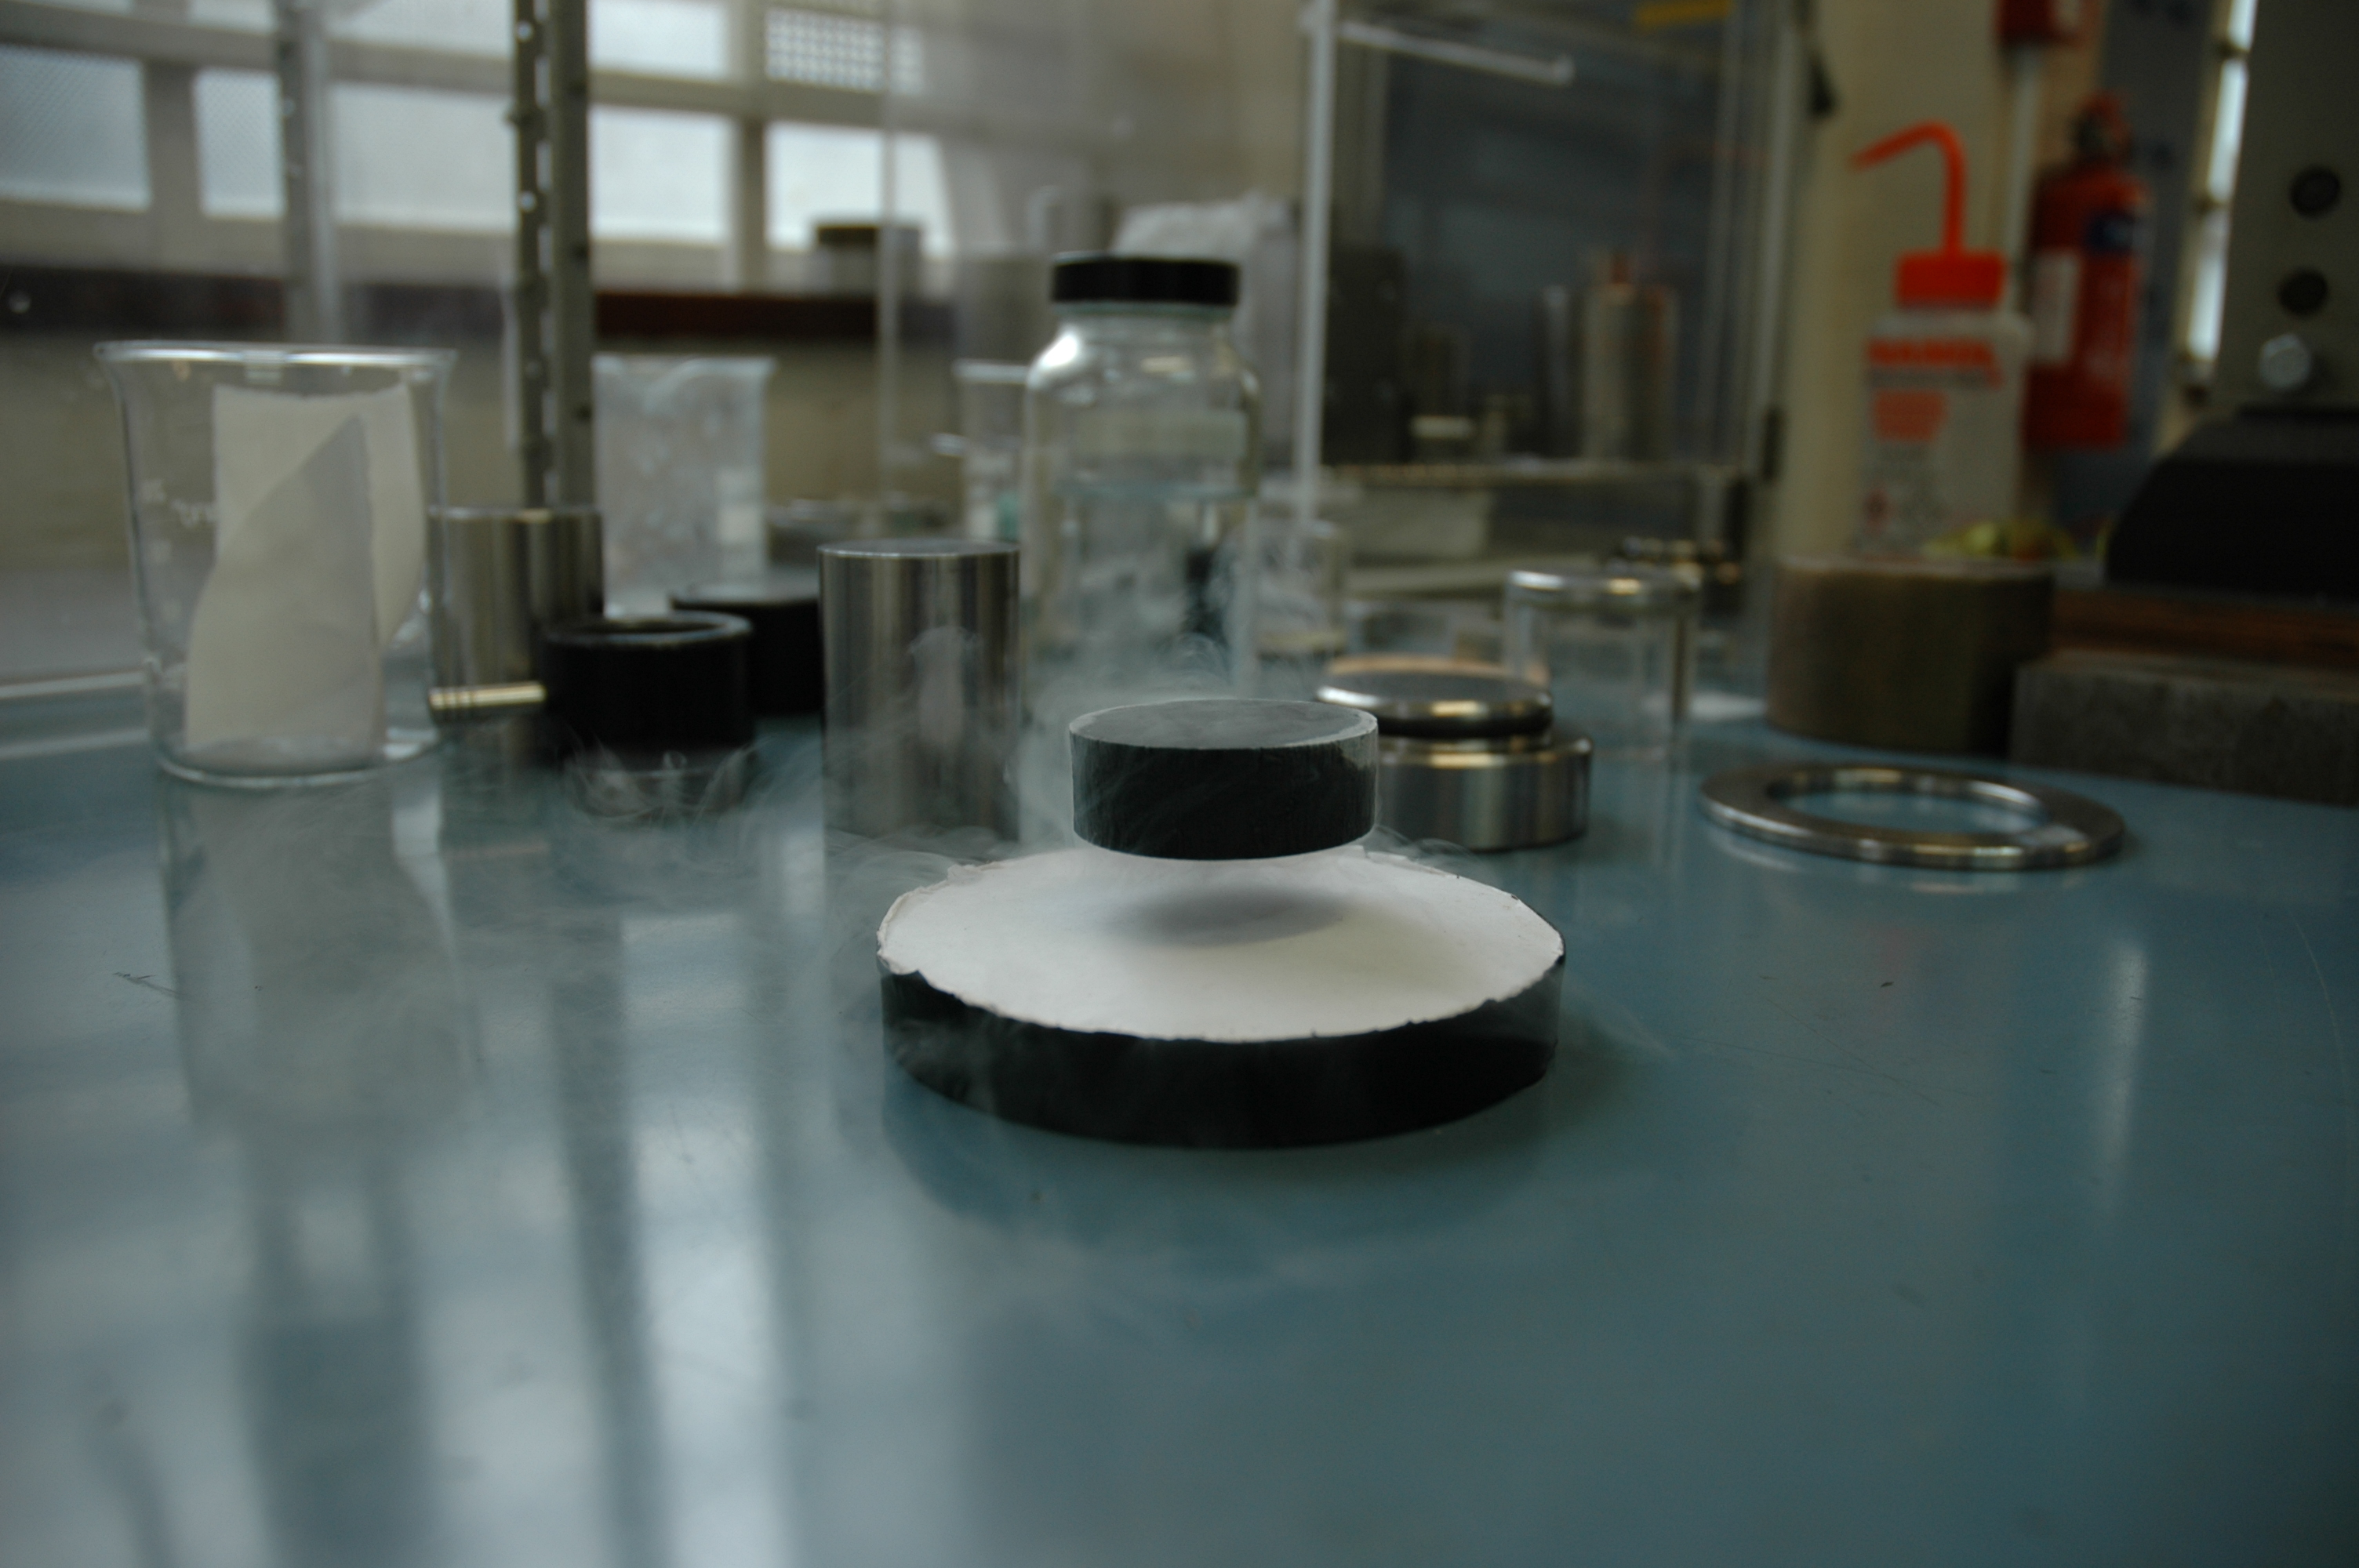 Bulk superconductor levitated by a permanent magnet